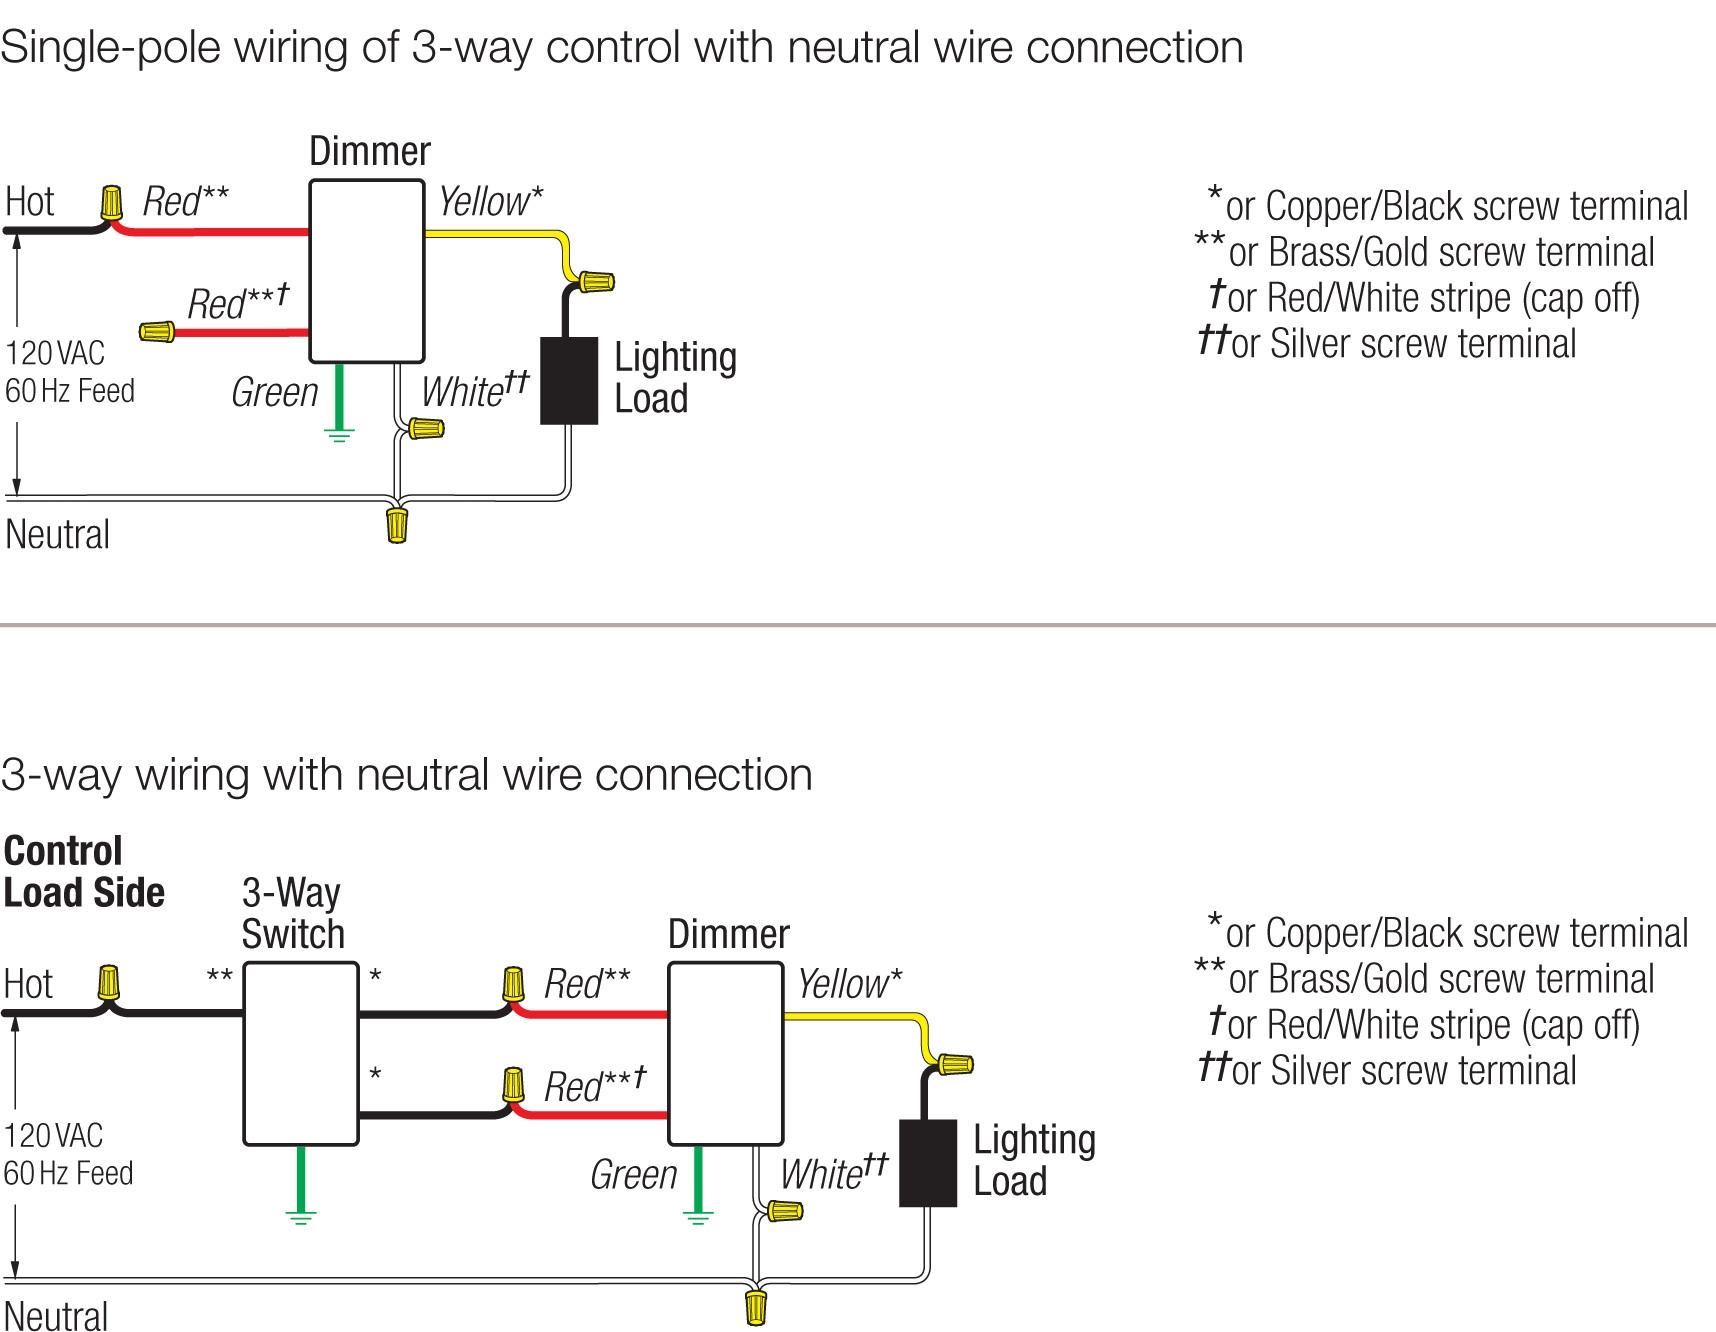 lutron caseta wiring diagram Download-lutron caseta wiring diagram Download Lutron Dimmer Switch Wiring Diagram For 3 Way To Dvelv DOWNLOAD Wiring Diagram Detail Name lutron caseta 14-n